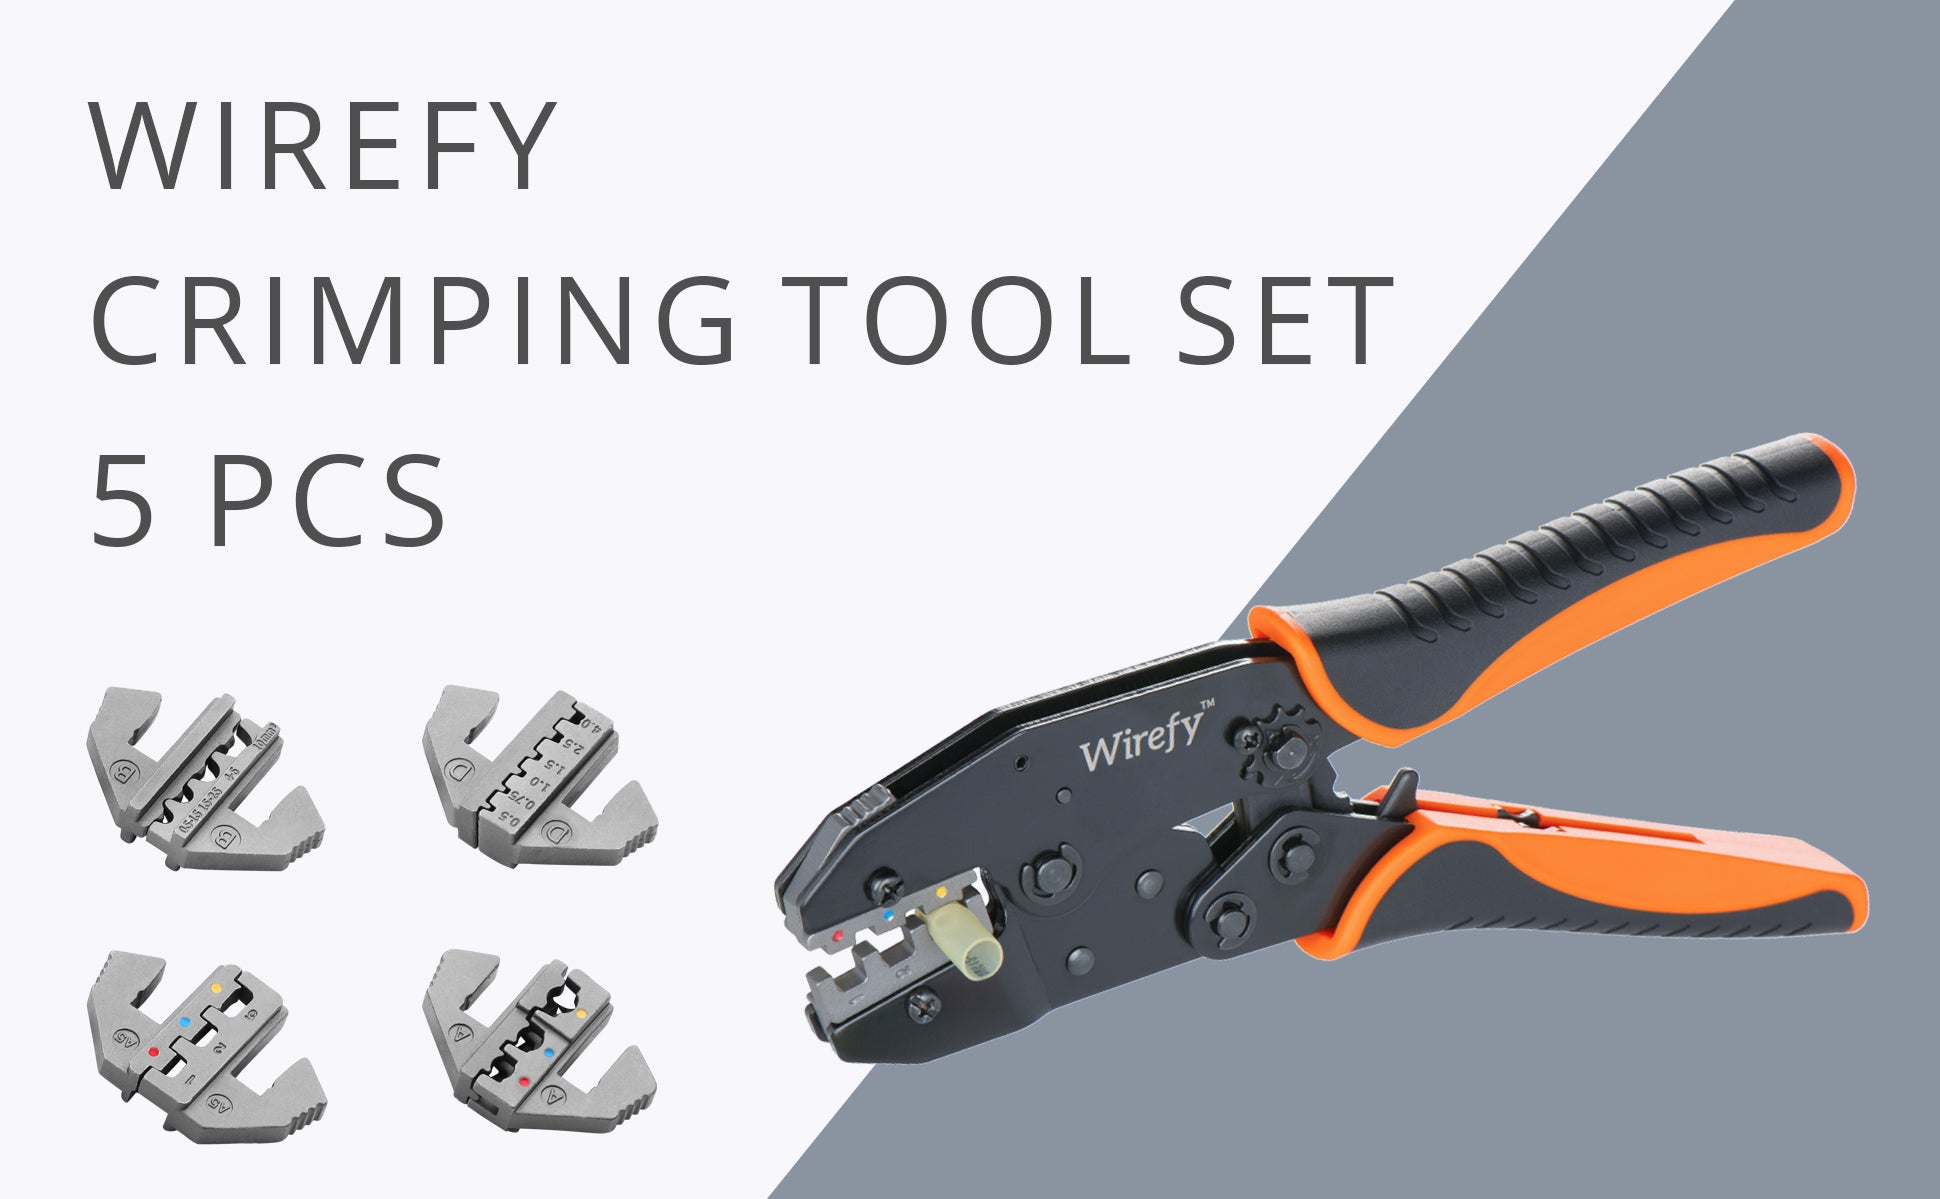 Crimping Tool Set with Interchangeable Dies - 5 PCS